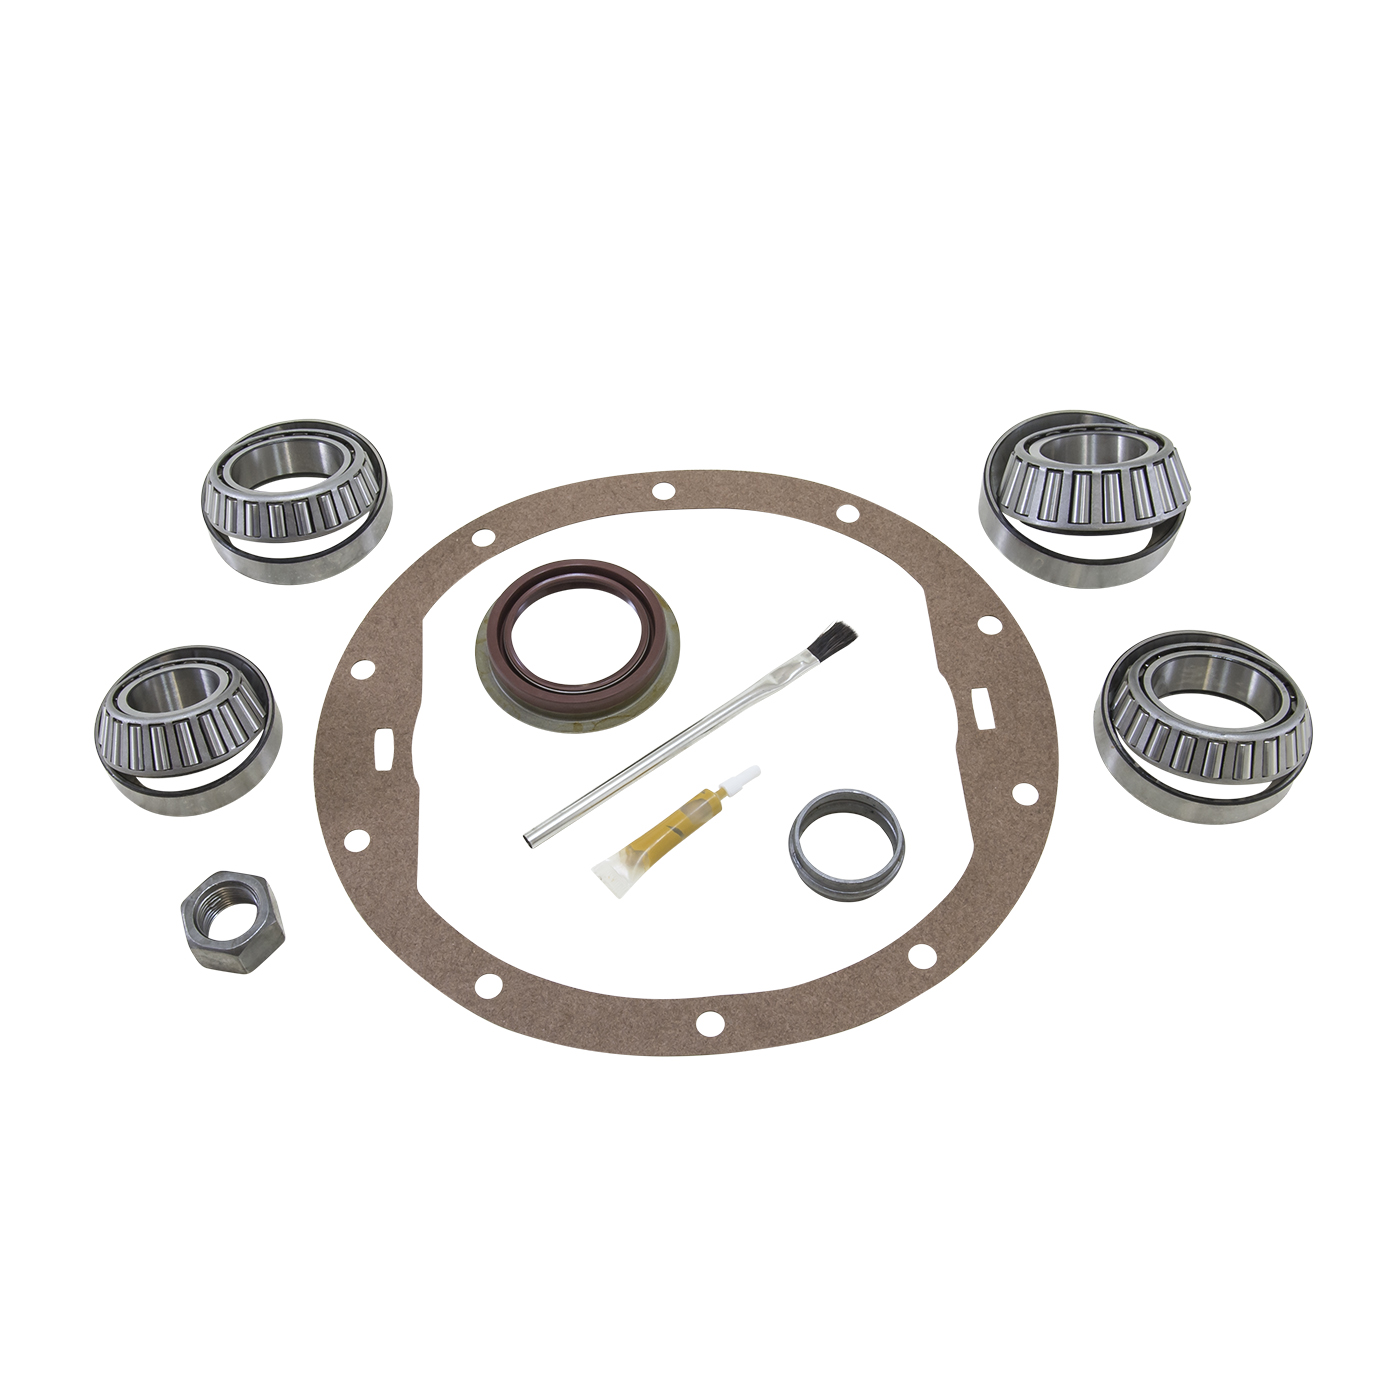 BK GM8.5-HD - Yukon Bearing install kit for GM 8.5